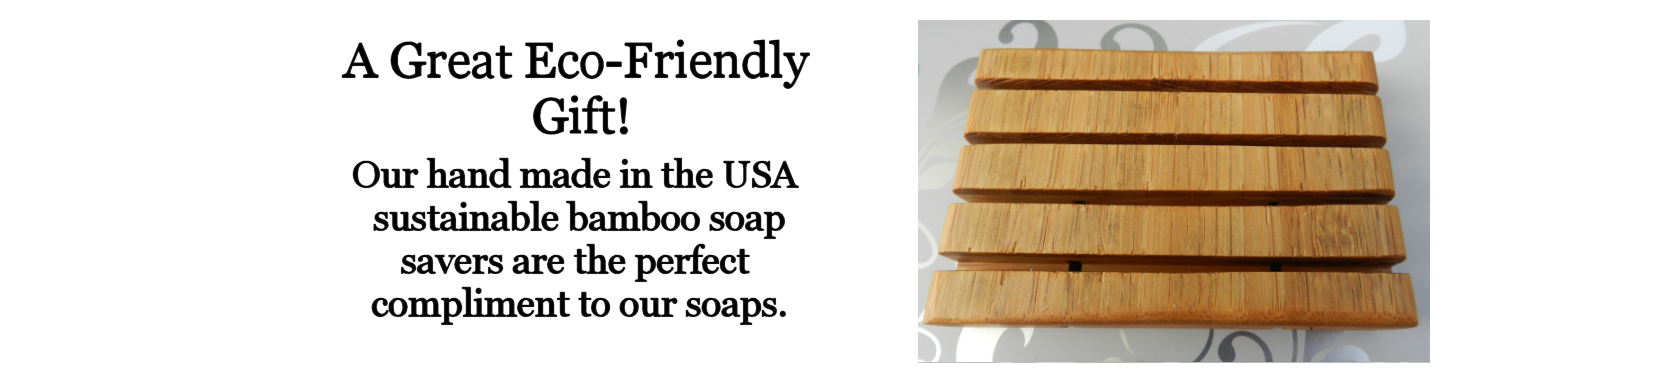 Eco friendly handmade sustainable bamboo soap saver